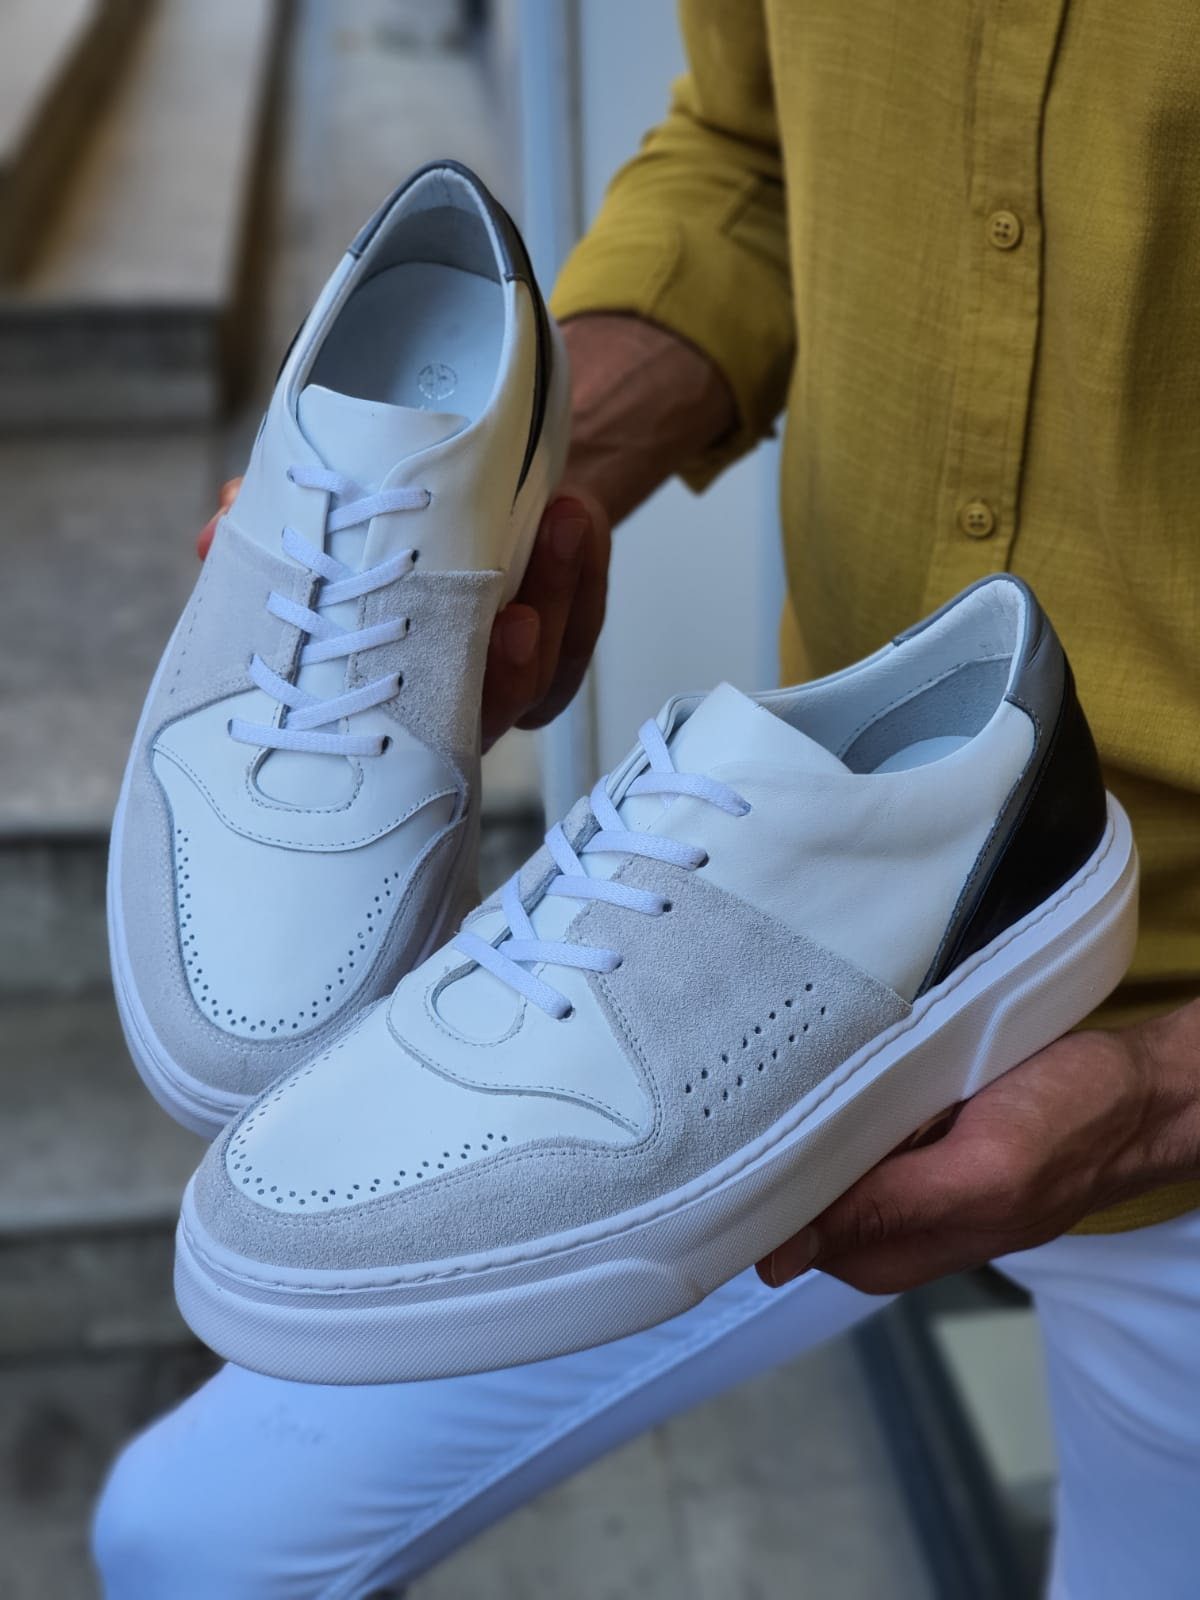 Aysoti White Mid-Top Sneakers